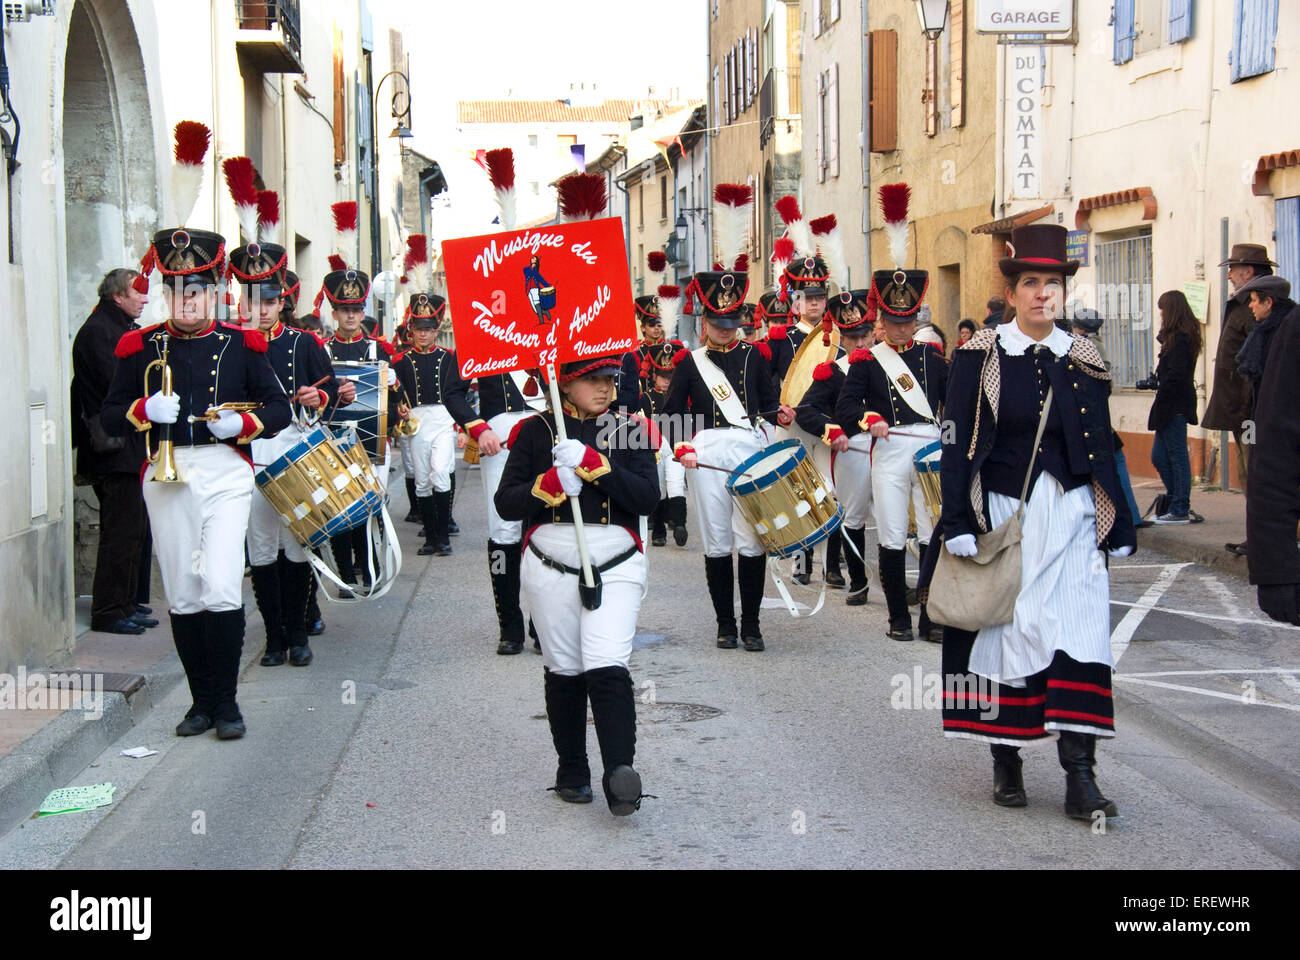 Drummers of the Musique du Tambour d'Arcole in Napoleonic light infantry uniform  marching in the village of Roquemaure, Stock Photo